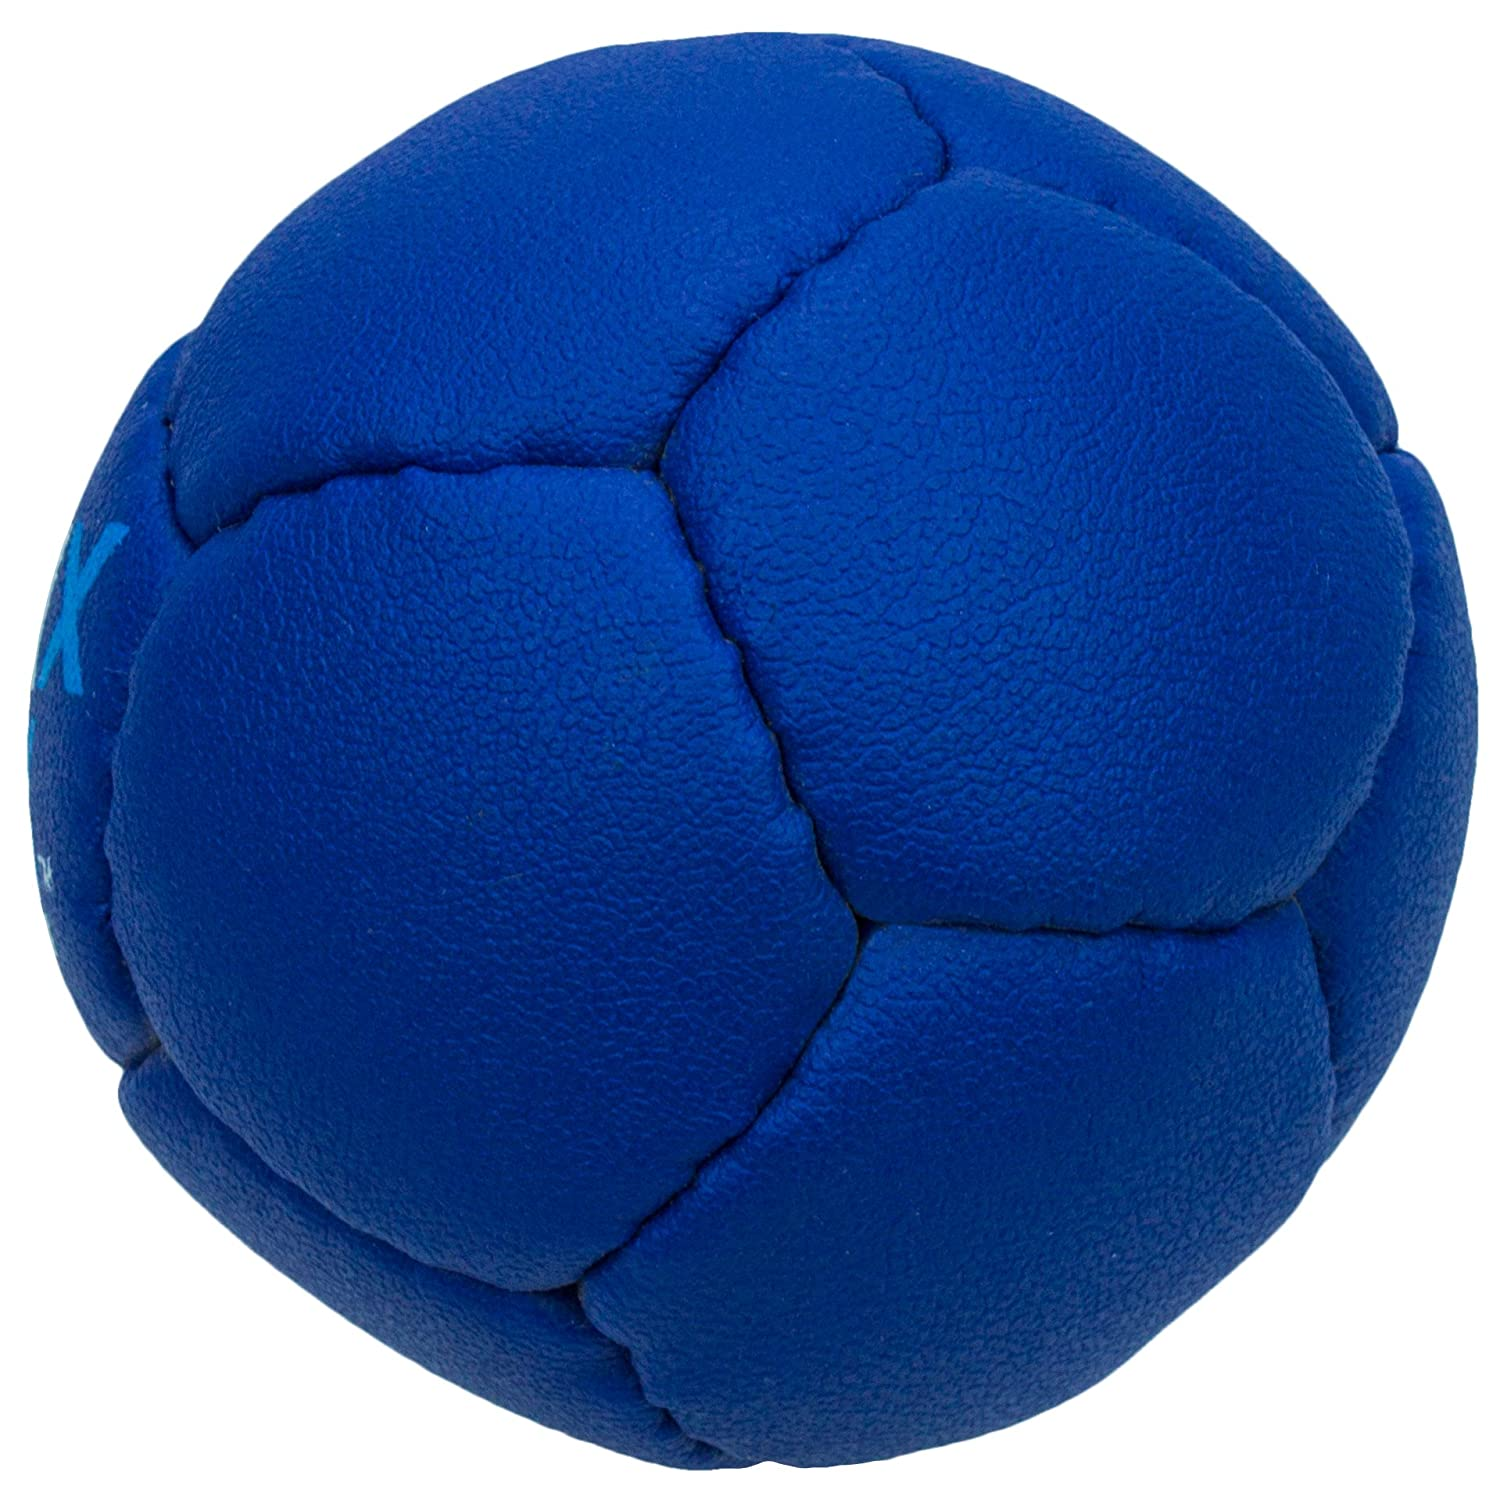 efb92b318b1 Amazon.com   SWAX LAX Lacrosse Training Ball (Blue) Same Size and Weight as  Regulation Lacrosse Ball but Soft - No Rebounds